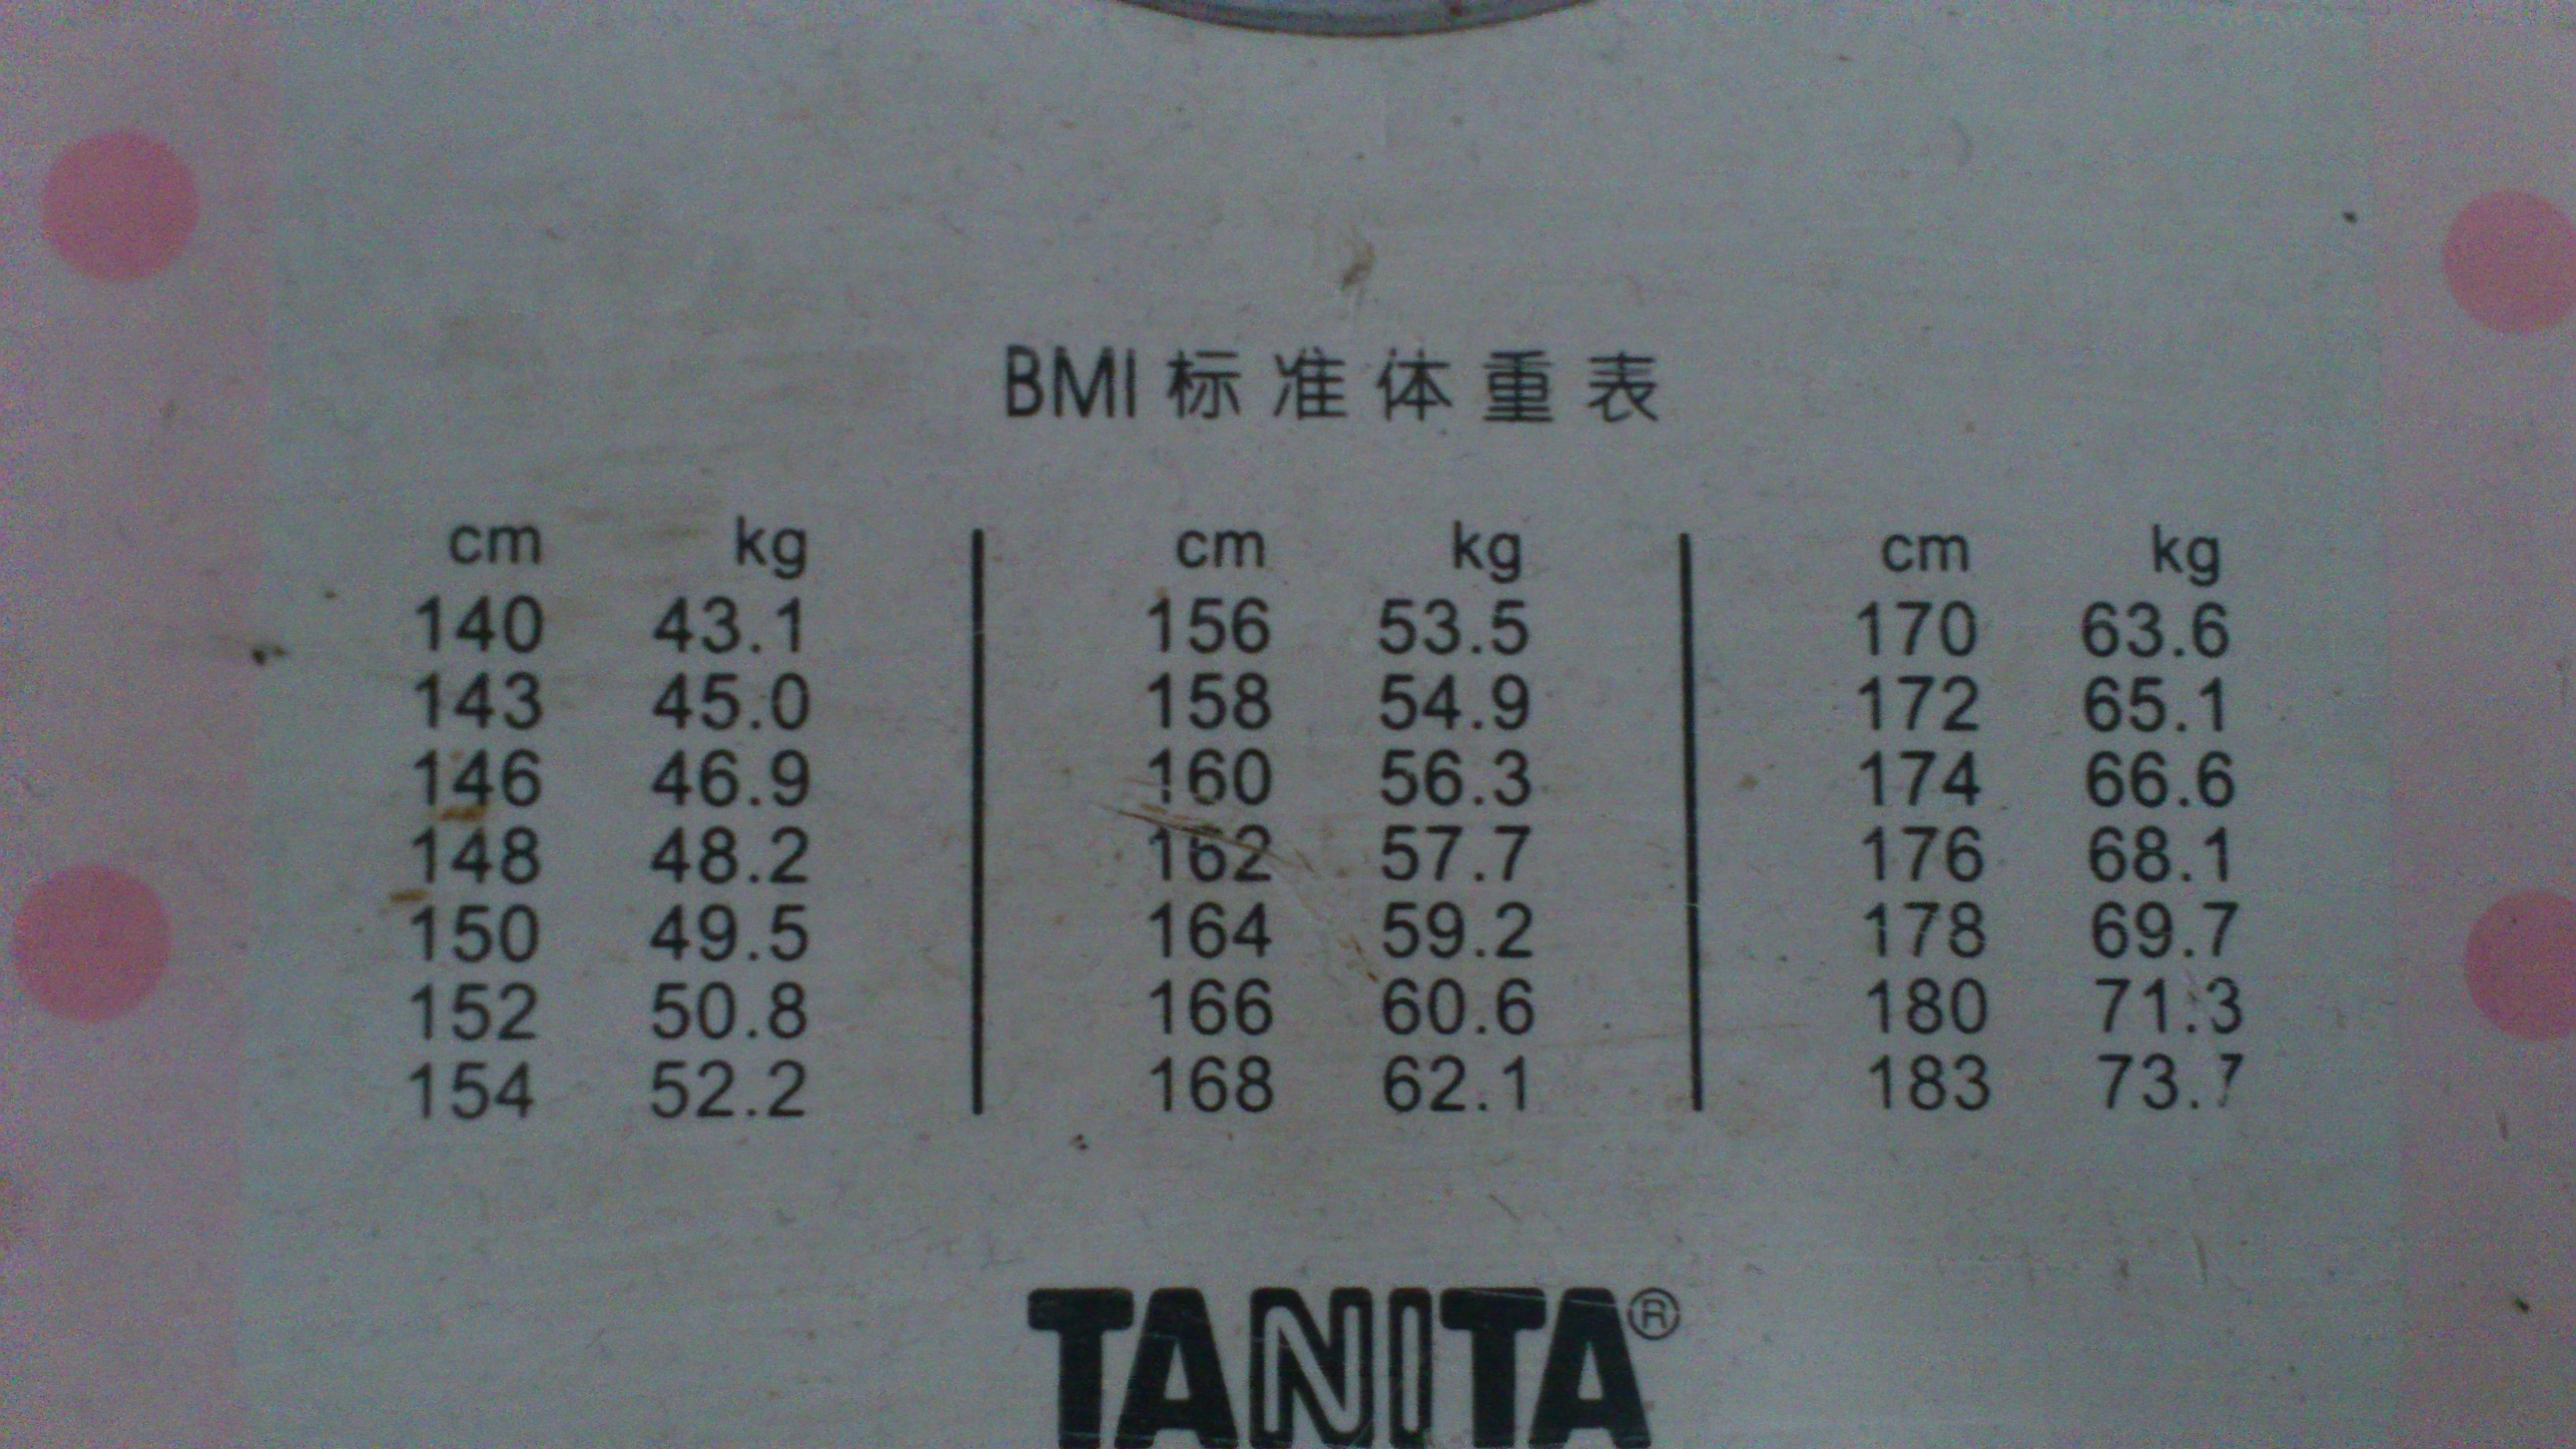 Your healthy weight does this bmi chart scare you midnight bmi weight standard nvjuhfo Choice Image